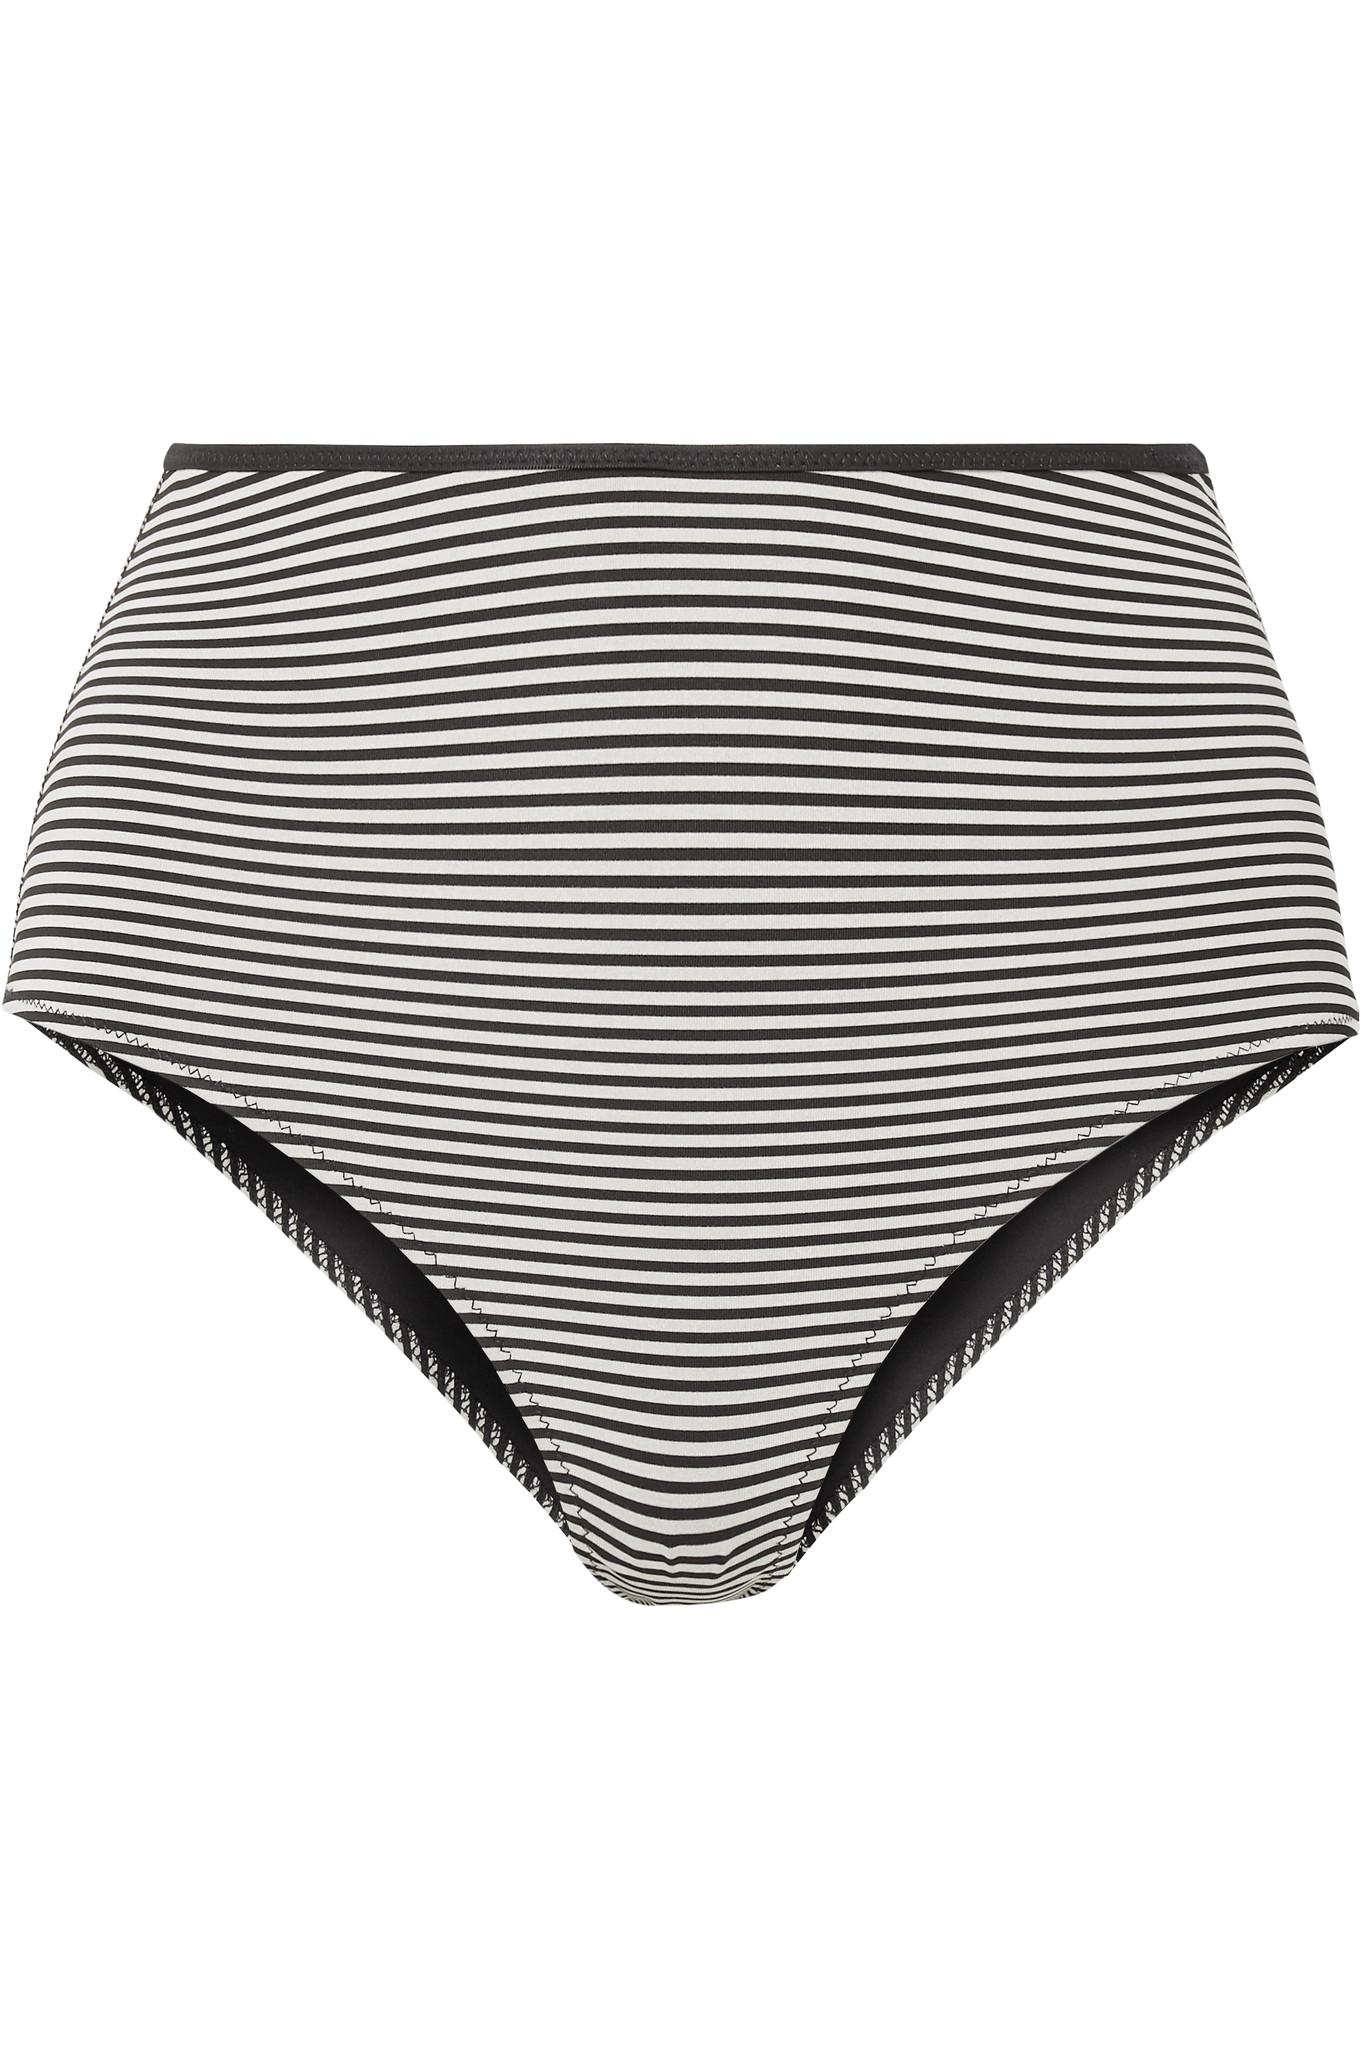 46f2c15befb Lyst - Marysia Swim Tarpum Bay Reversible Striped Bikini Briefs in Black